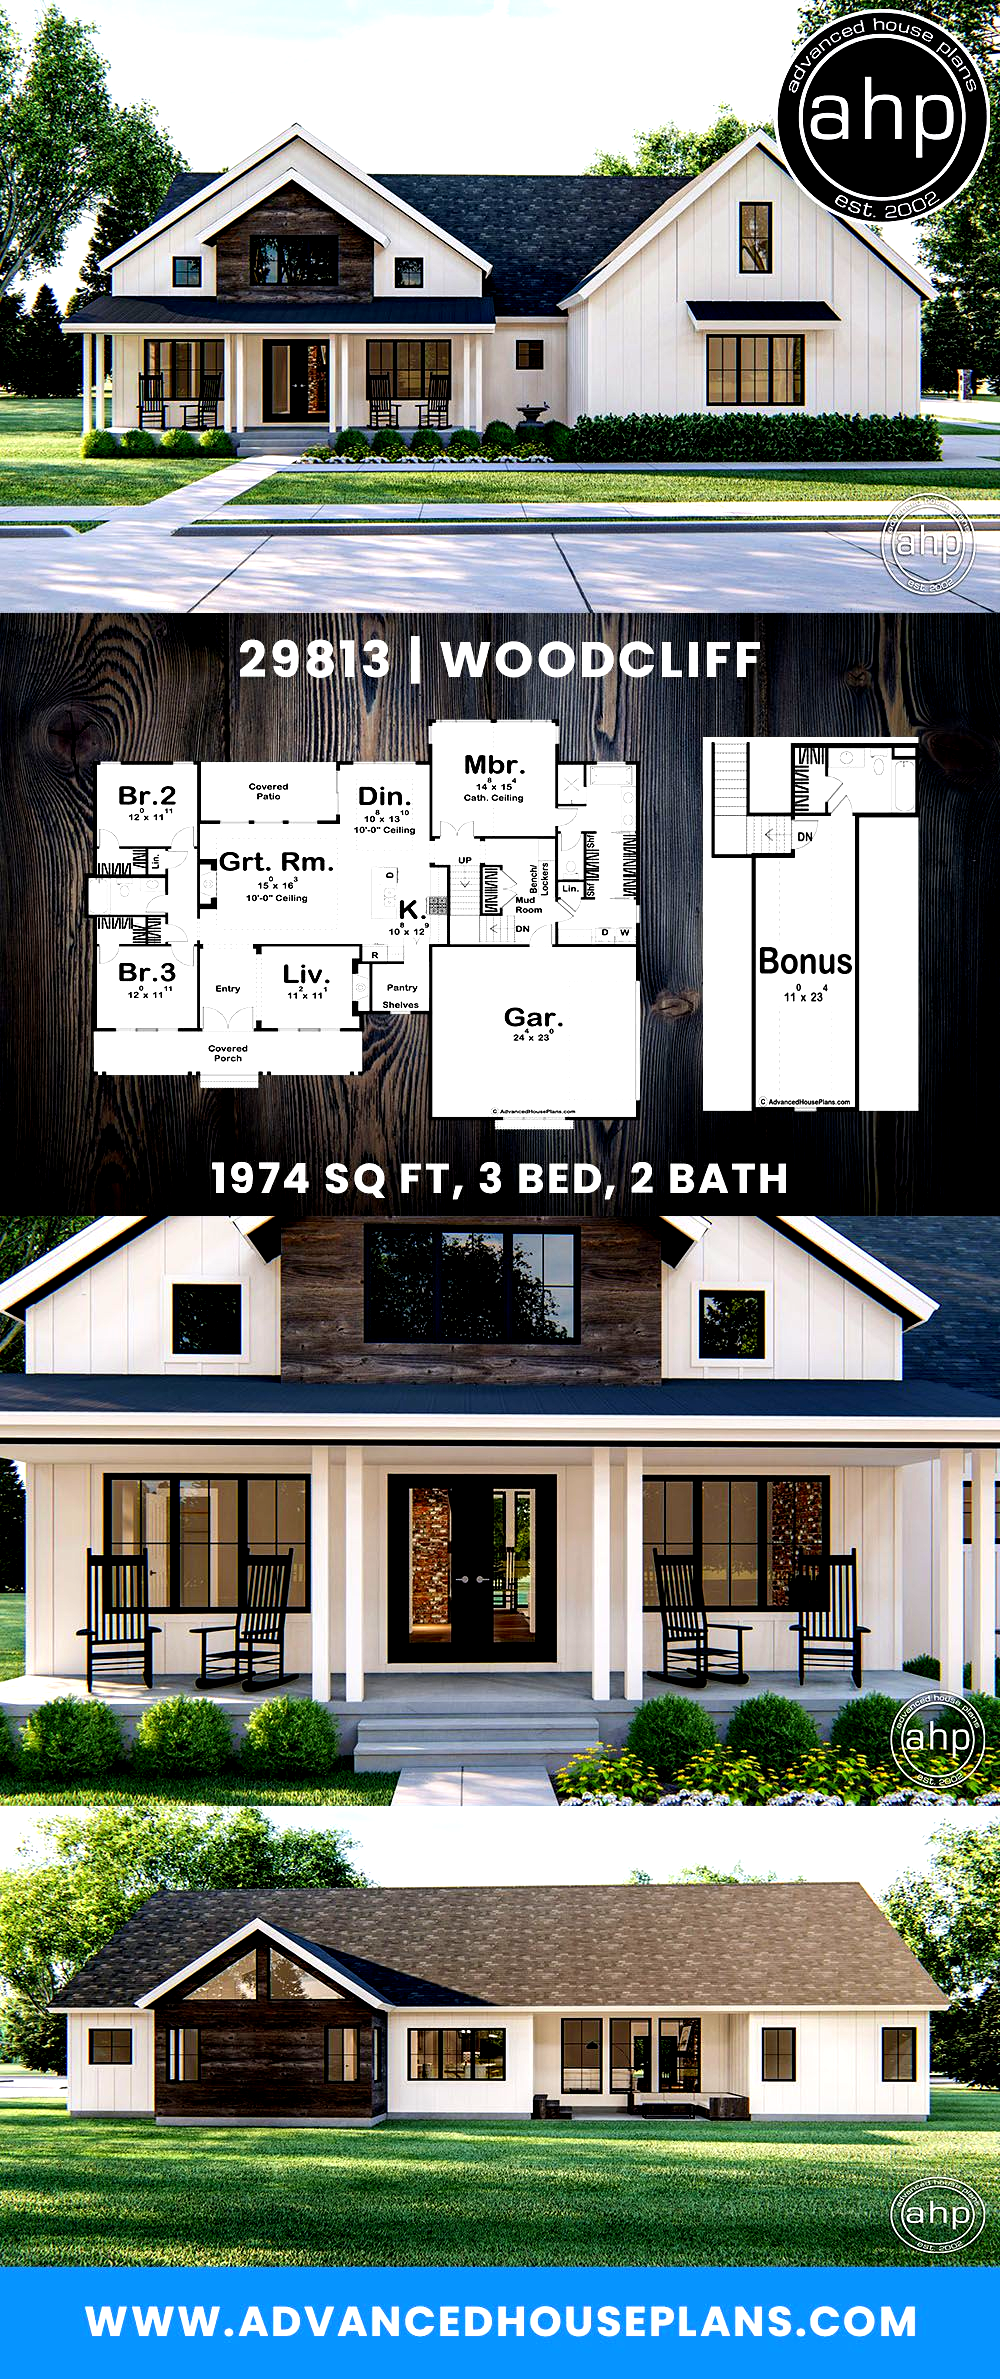 1 Story Modern Farmhouse Plan Woodcliff The Woodcliff